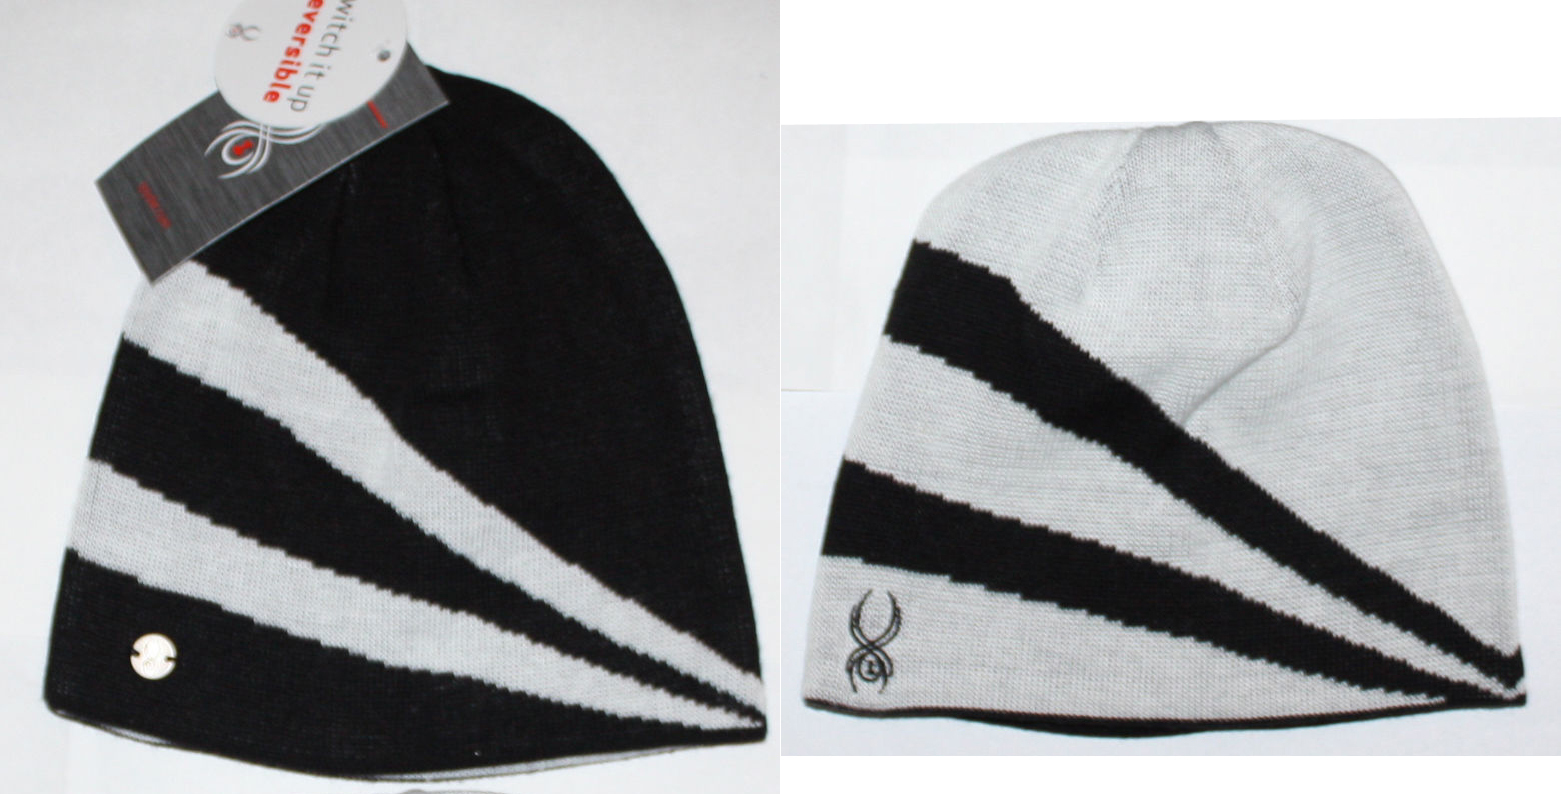 Spyder Switch It Up Women's Black/White Jacquard Stripe Reversible Beanie (One Size) 11772